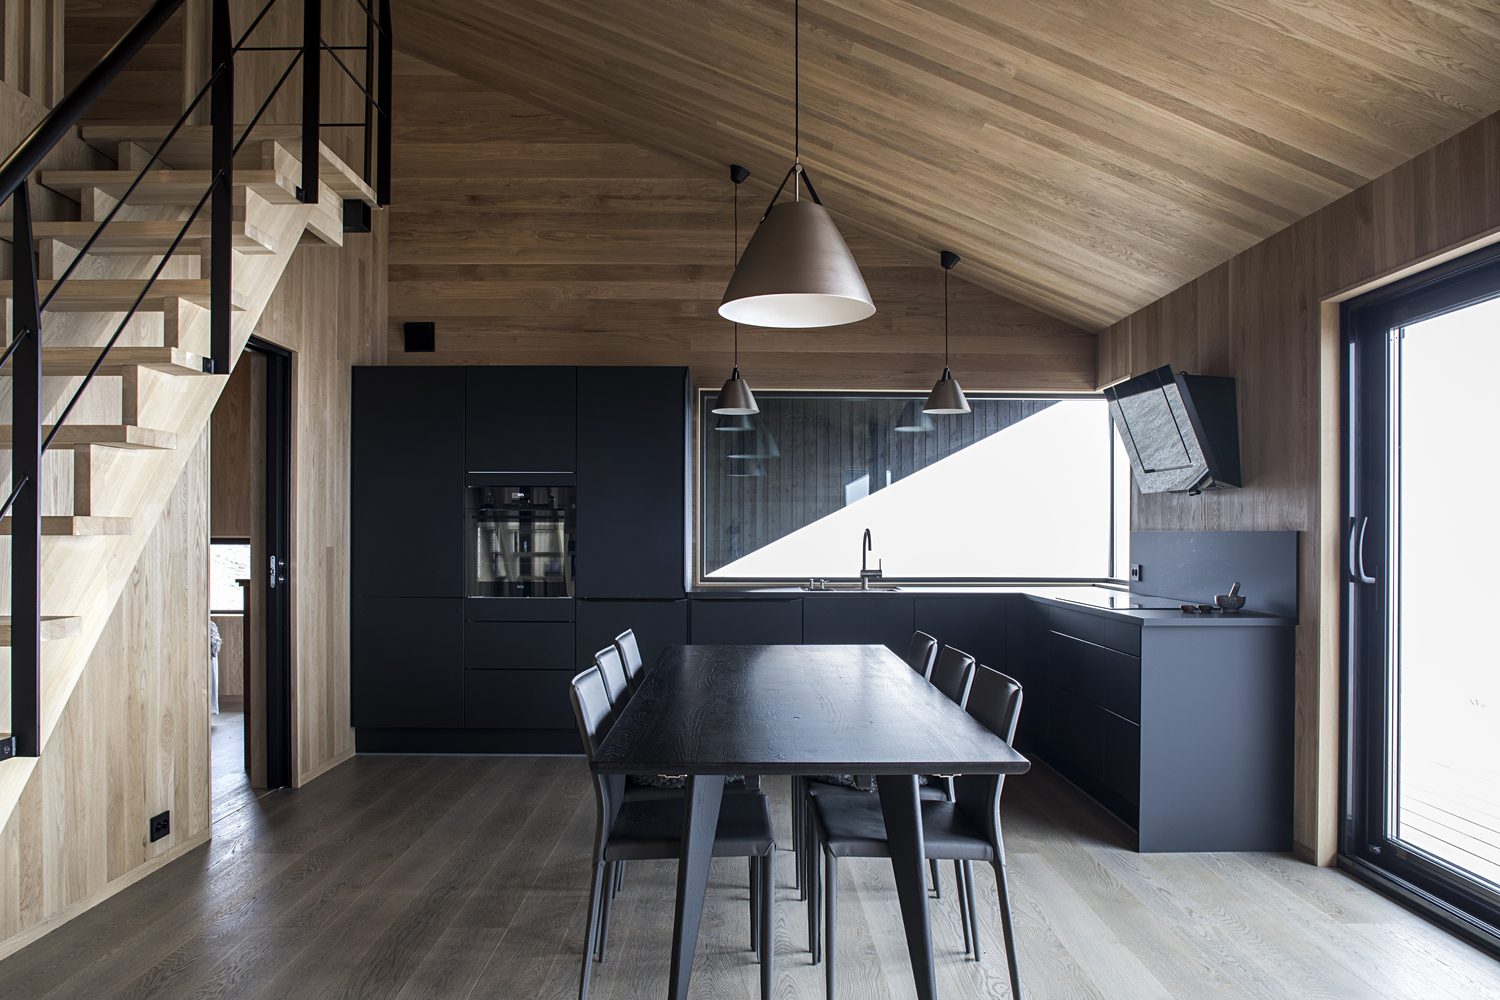 The gabled roof allows the cabin to include a cozy attic level which serves as a sleeping area for eight